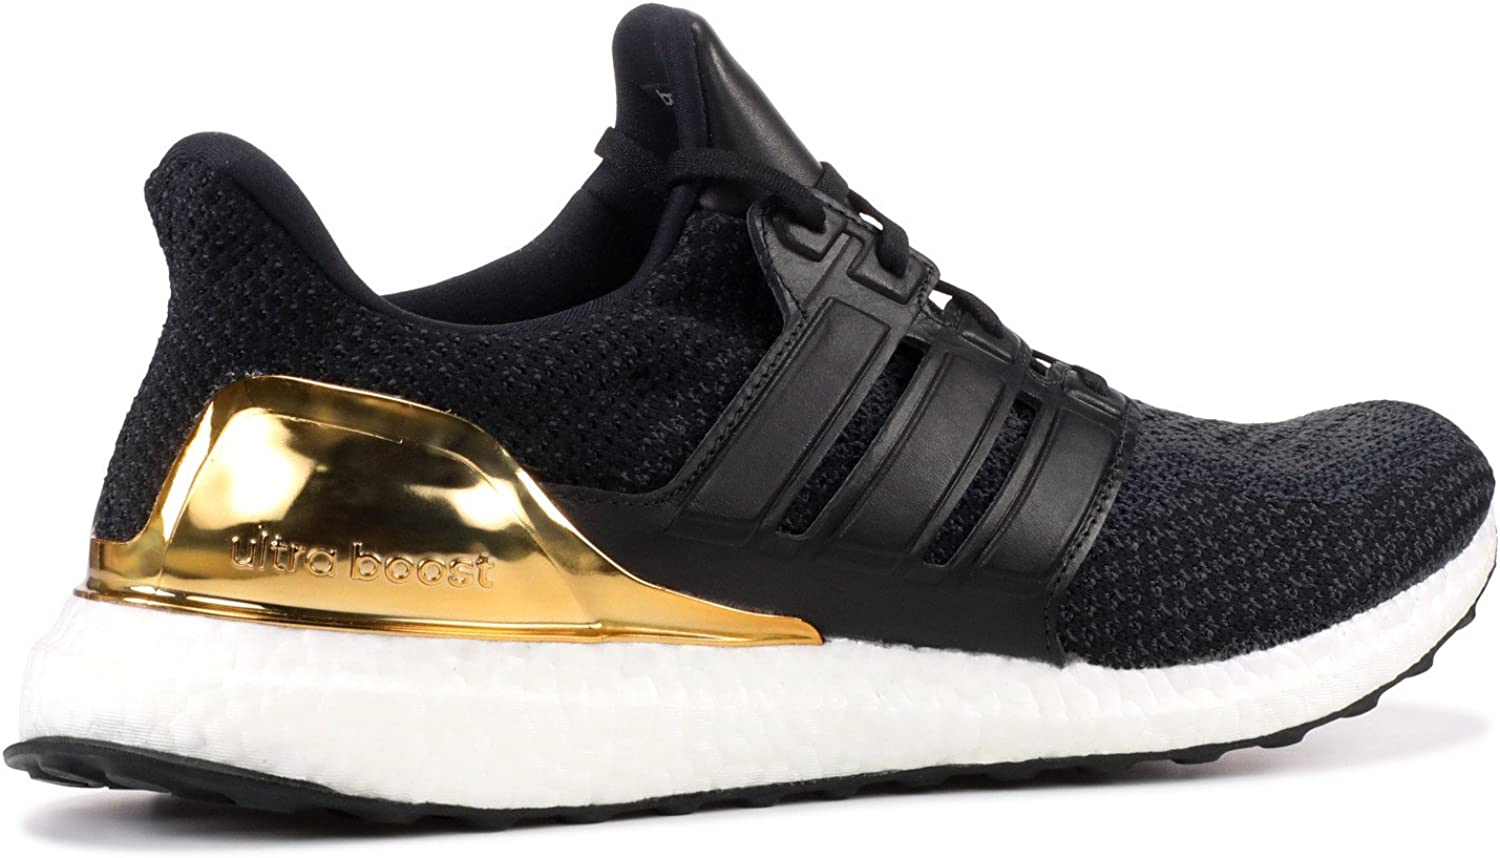 adidas Ultra Boost 2.0 'Gold Medal'